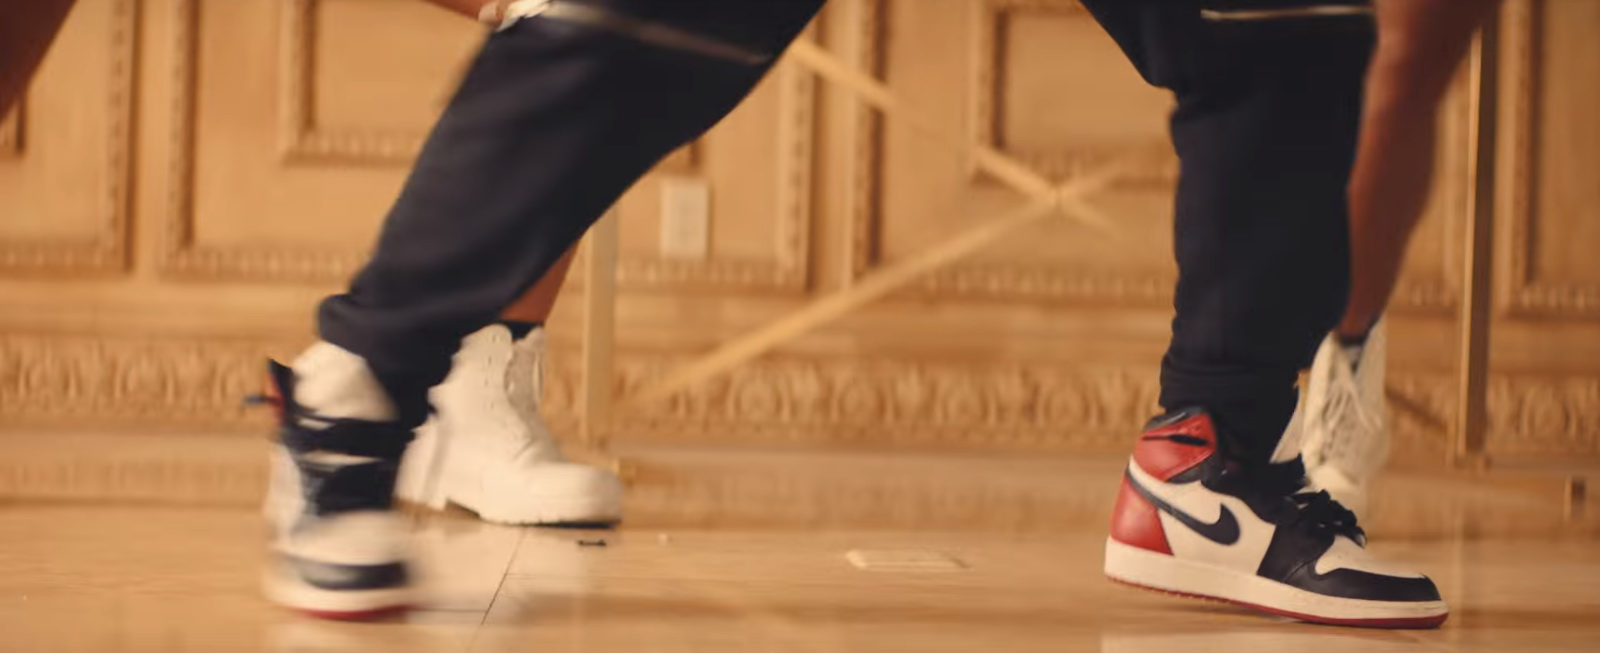 Nike Shoes - Major Lazer - Know No Better Official Music Video Product Placement